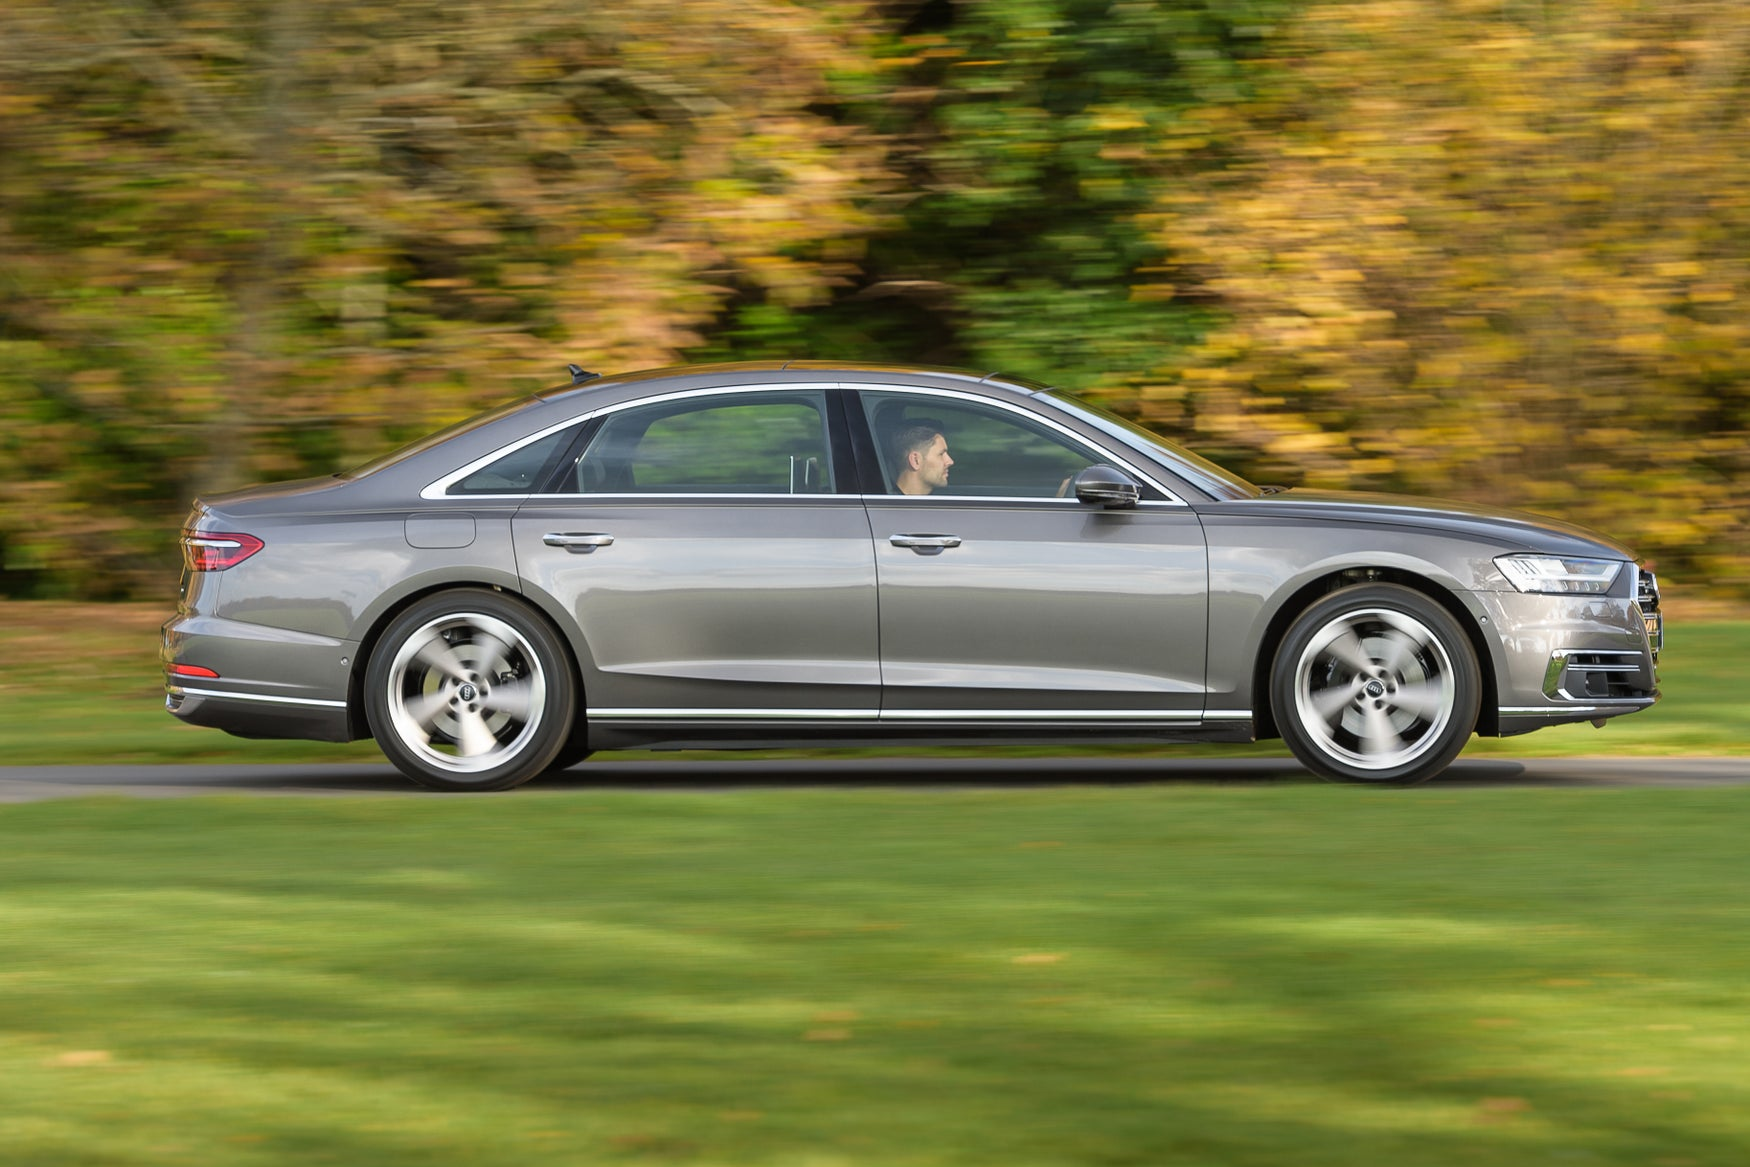 Audi A8 Driving Side